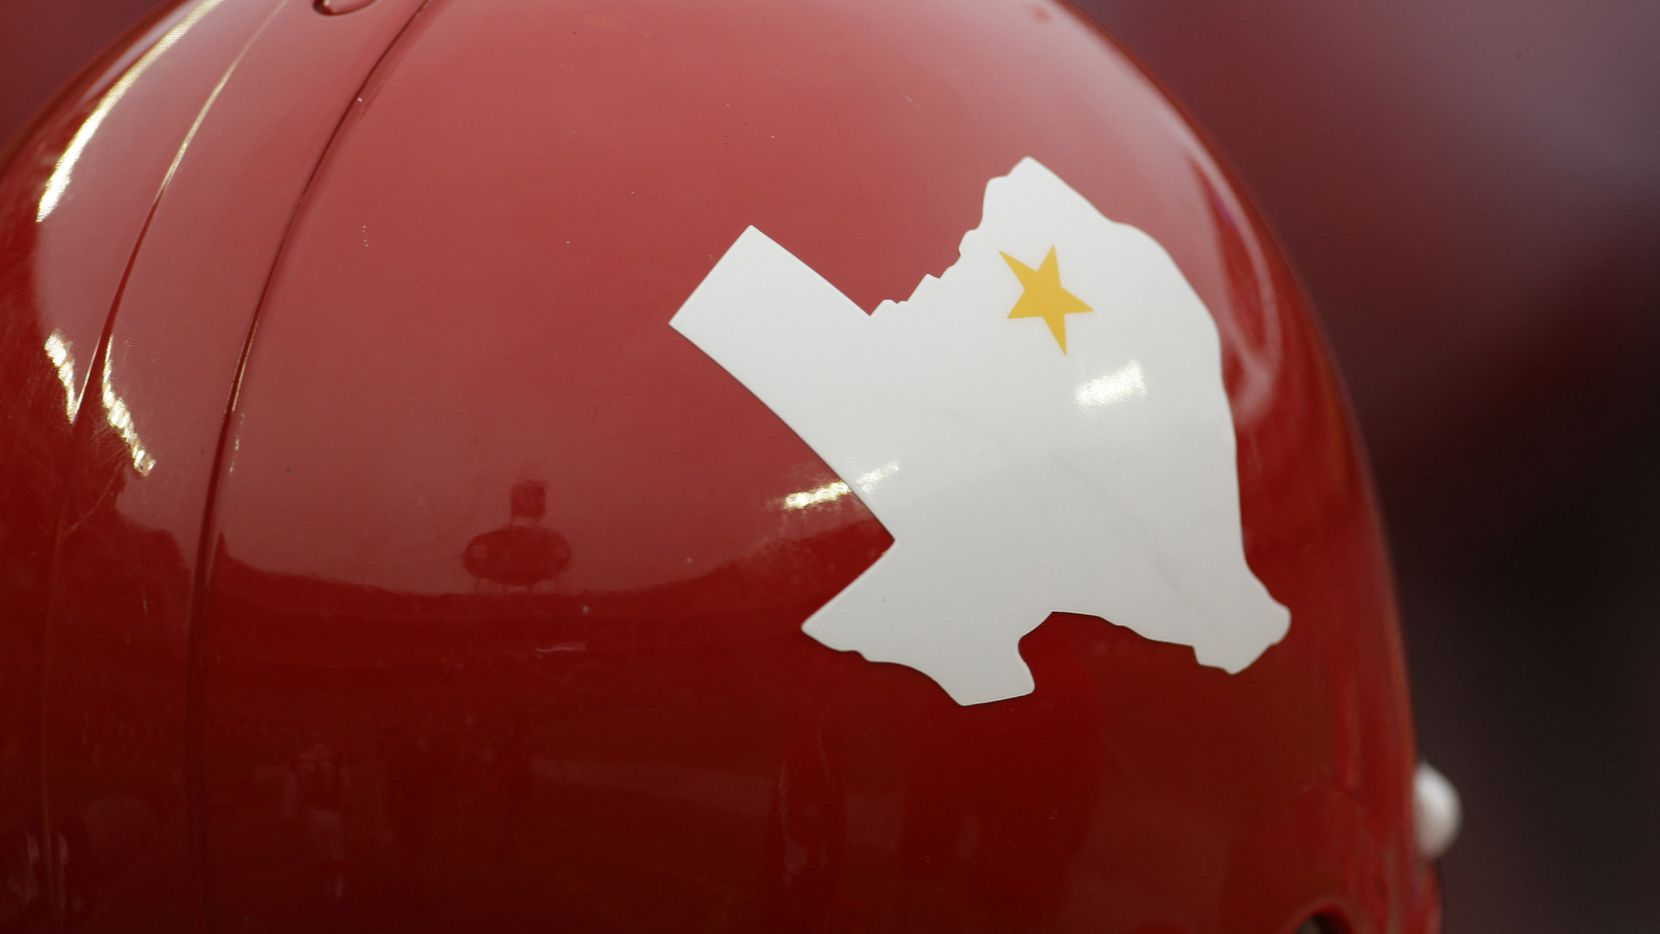 The Kansas City Chiefs wore Dallas Texans throwback uniforms, complete with the Texans' state-and-star logo on the helmets, for an October 2009 game against the Dallas Cowboys at Arrowhead Stadium in Kansas City, Mo. The Chiefs franchise played its first three seasons, 1960-62, as the Dallas Texans before moving to Kansas City in 1963.